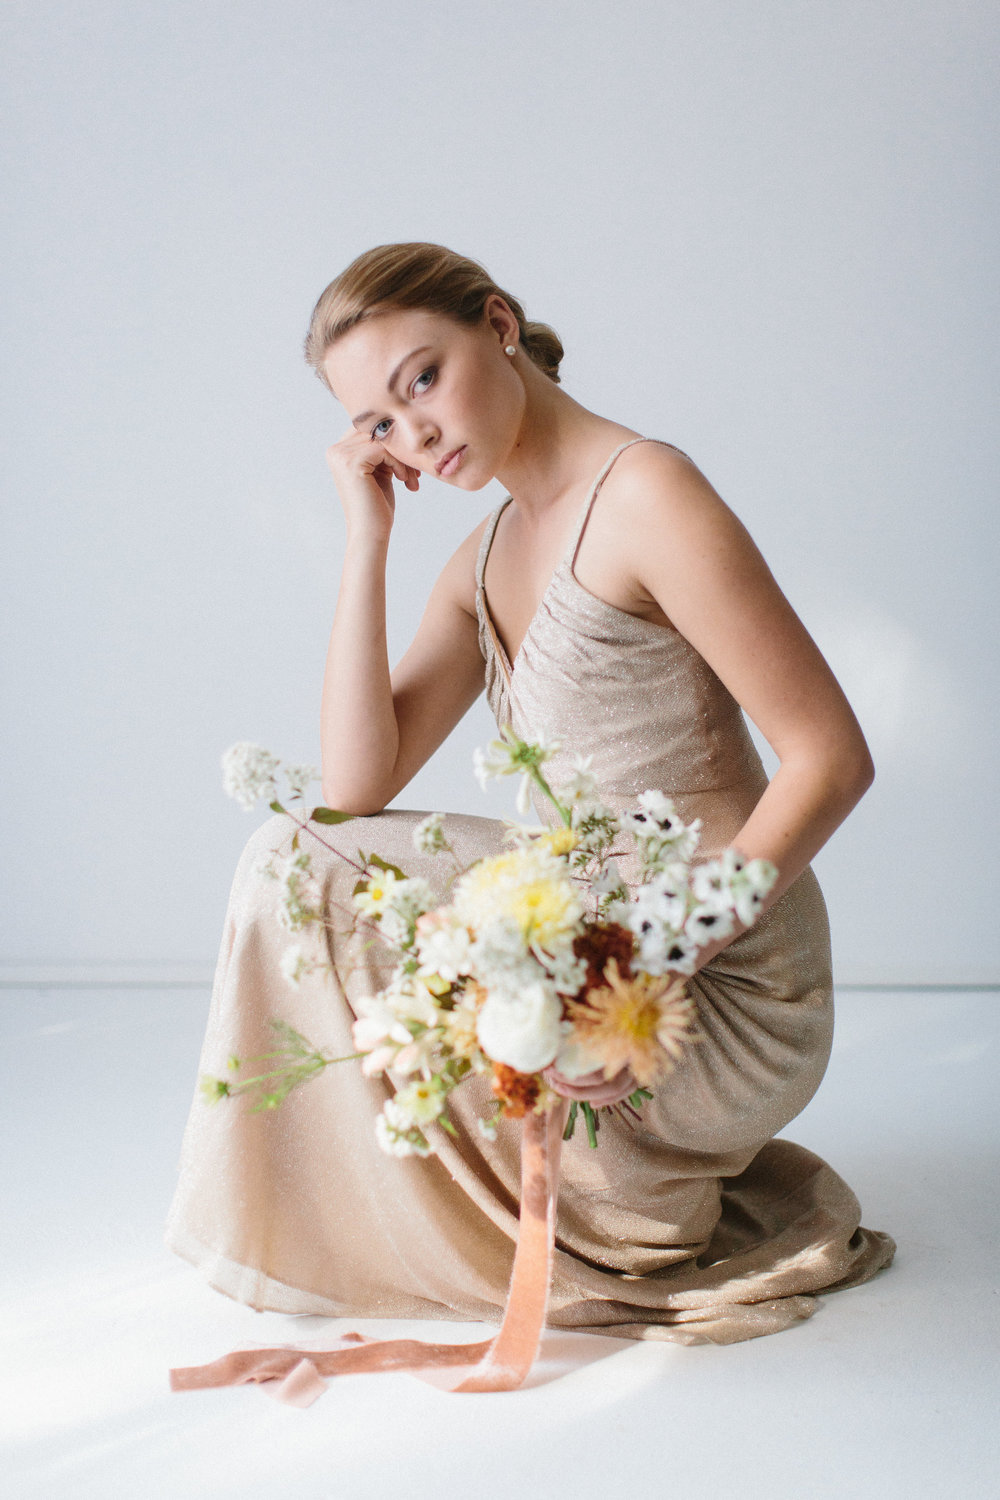 Styling/Florals: Ashley Fox Designs  Photo: Lauren Kirkbride  Model: Hannah Lee Duggan